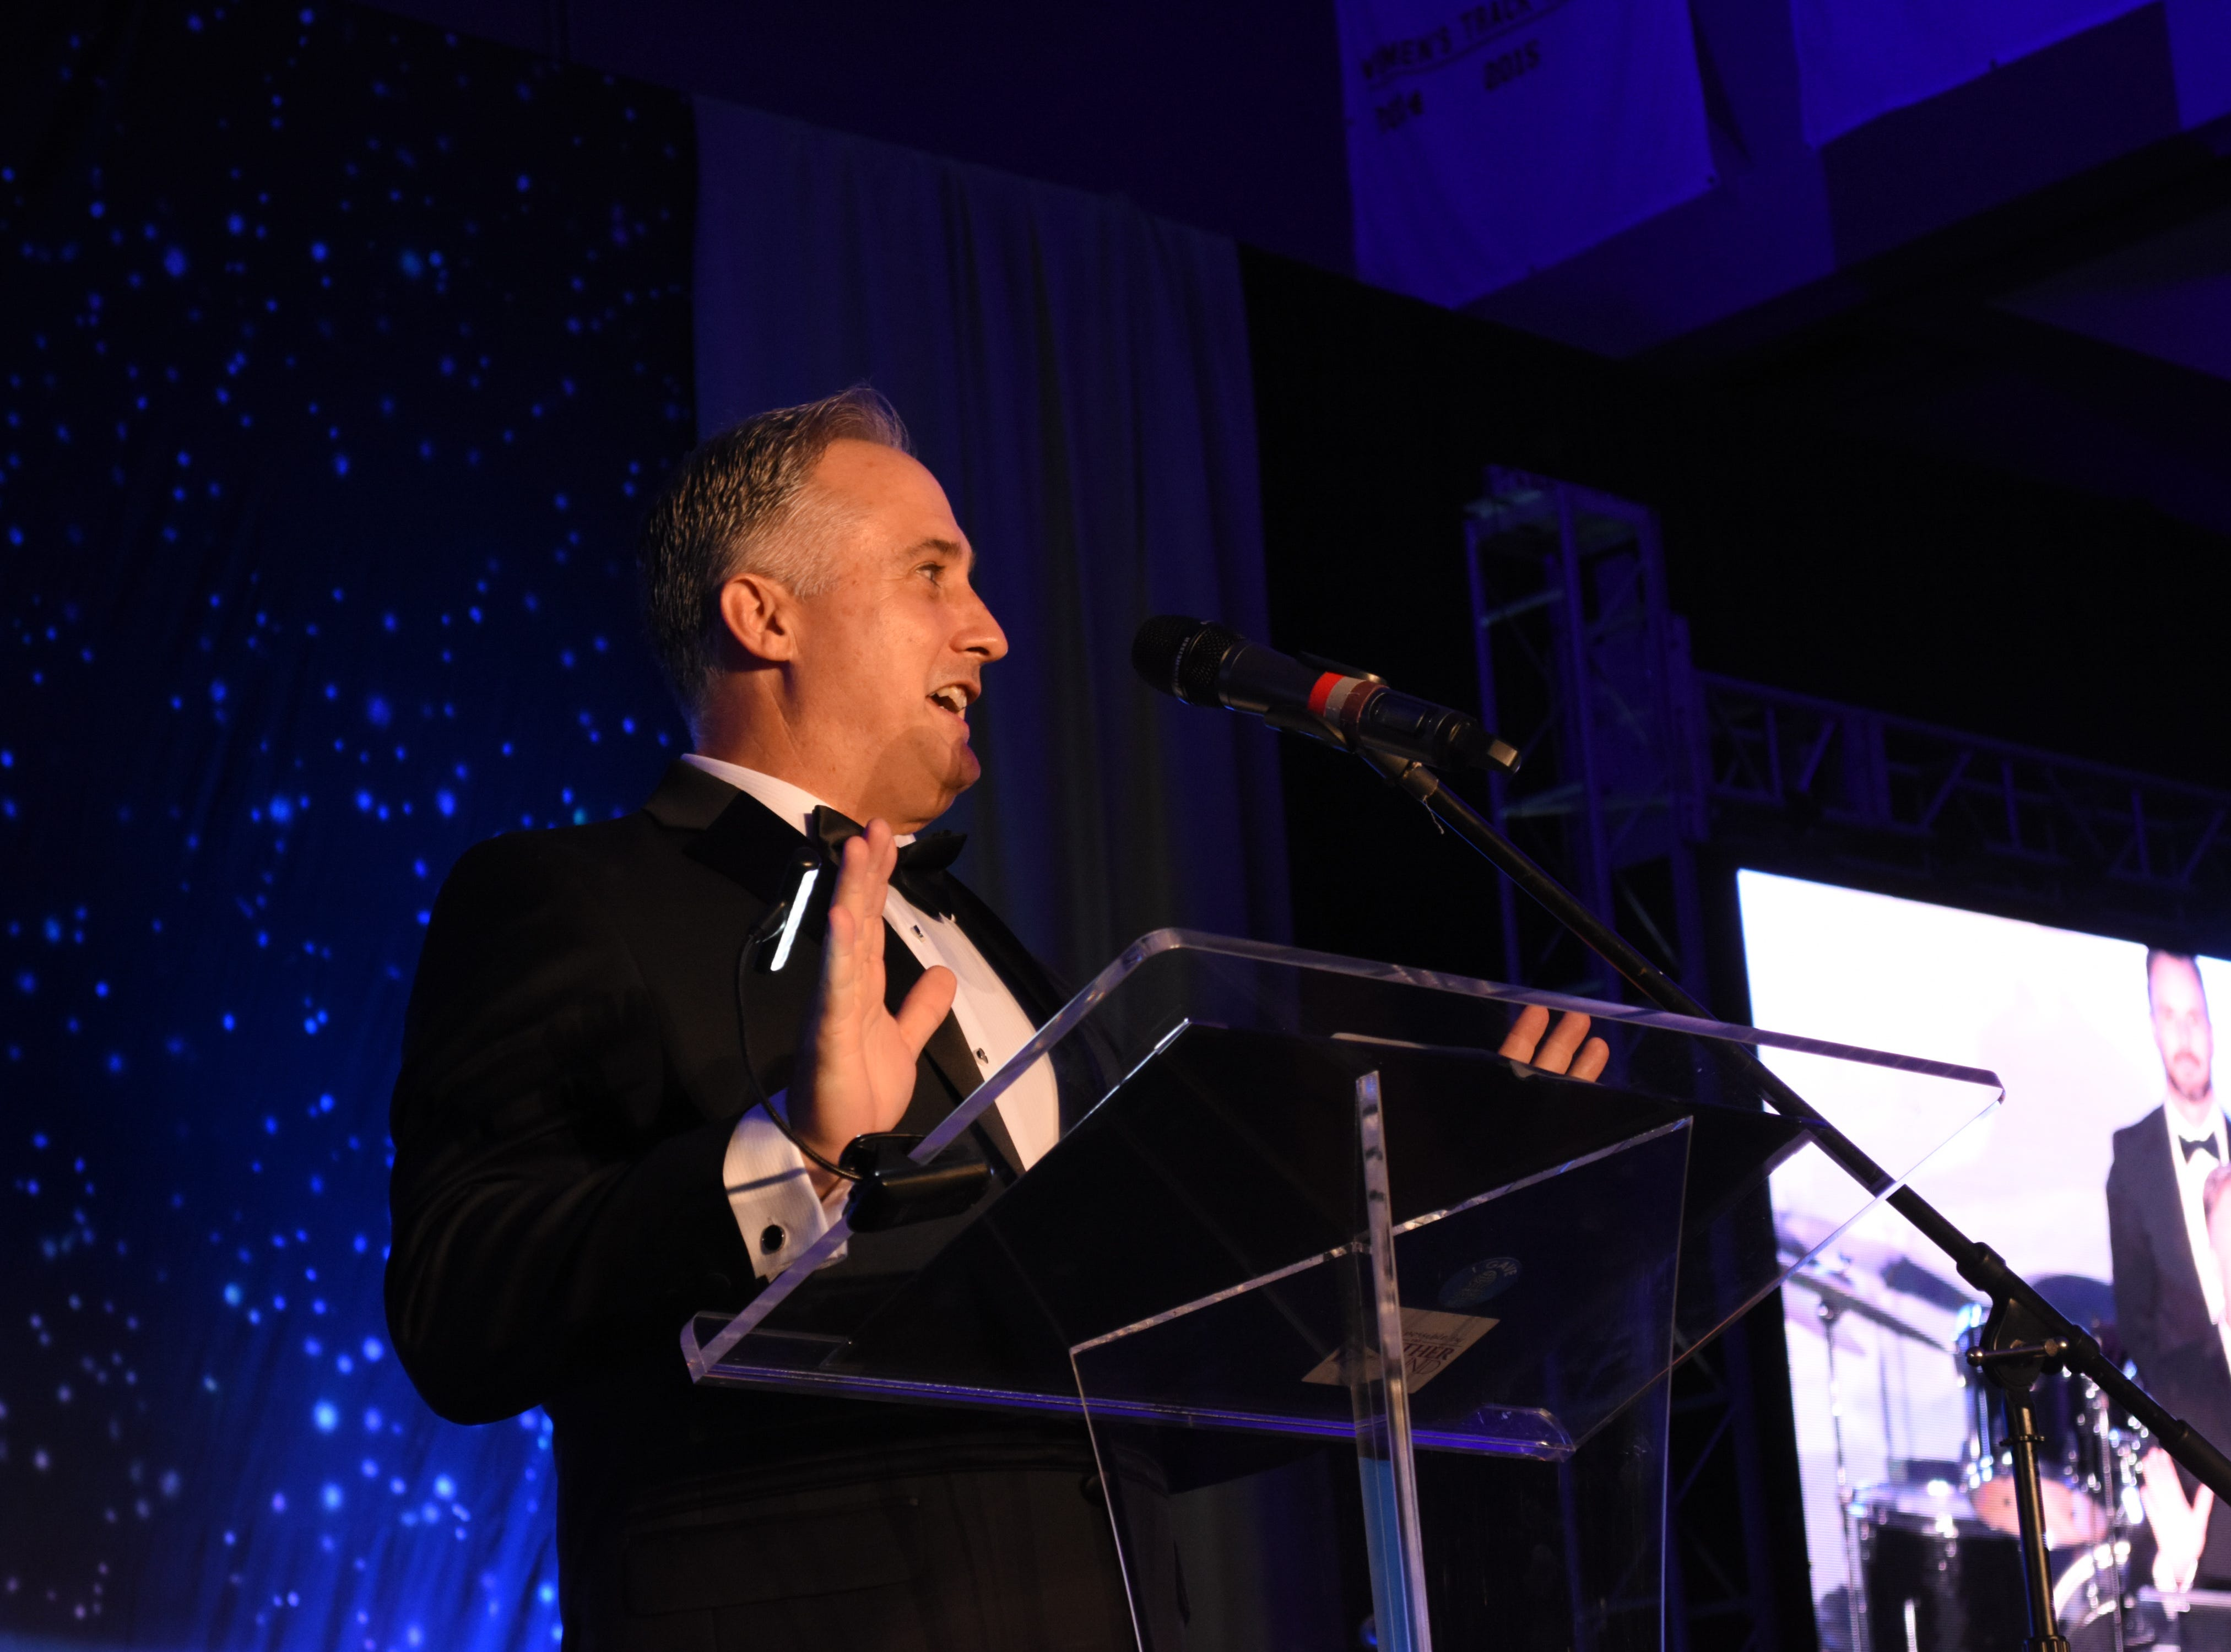 College of Science's Trent Smith speaks to the crowd after accepting the Outstanding Alumni award at Florida Tech's 60th Anniversary Homecoming Gala Oct. 13, 2018, at the Clemente Center.